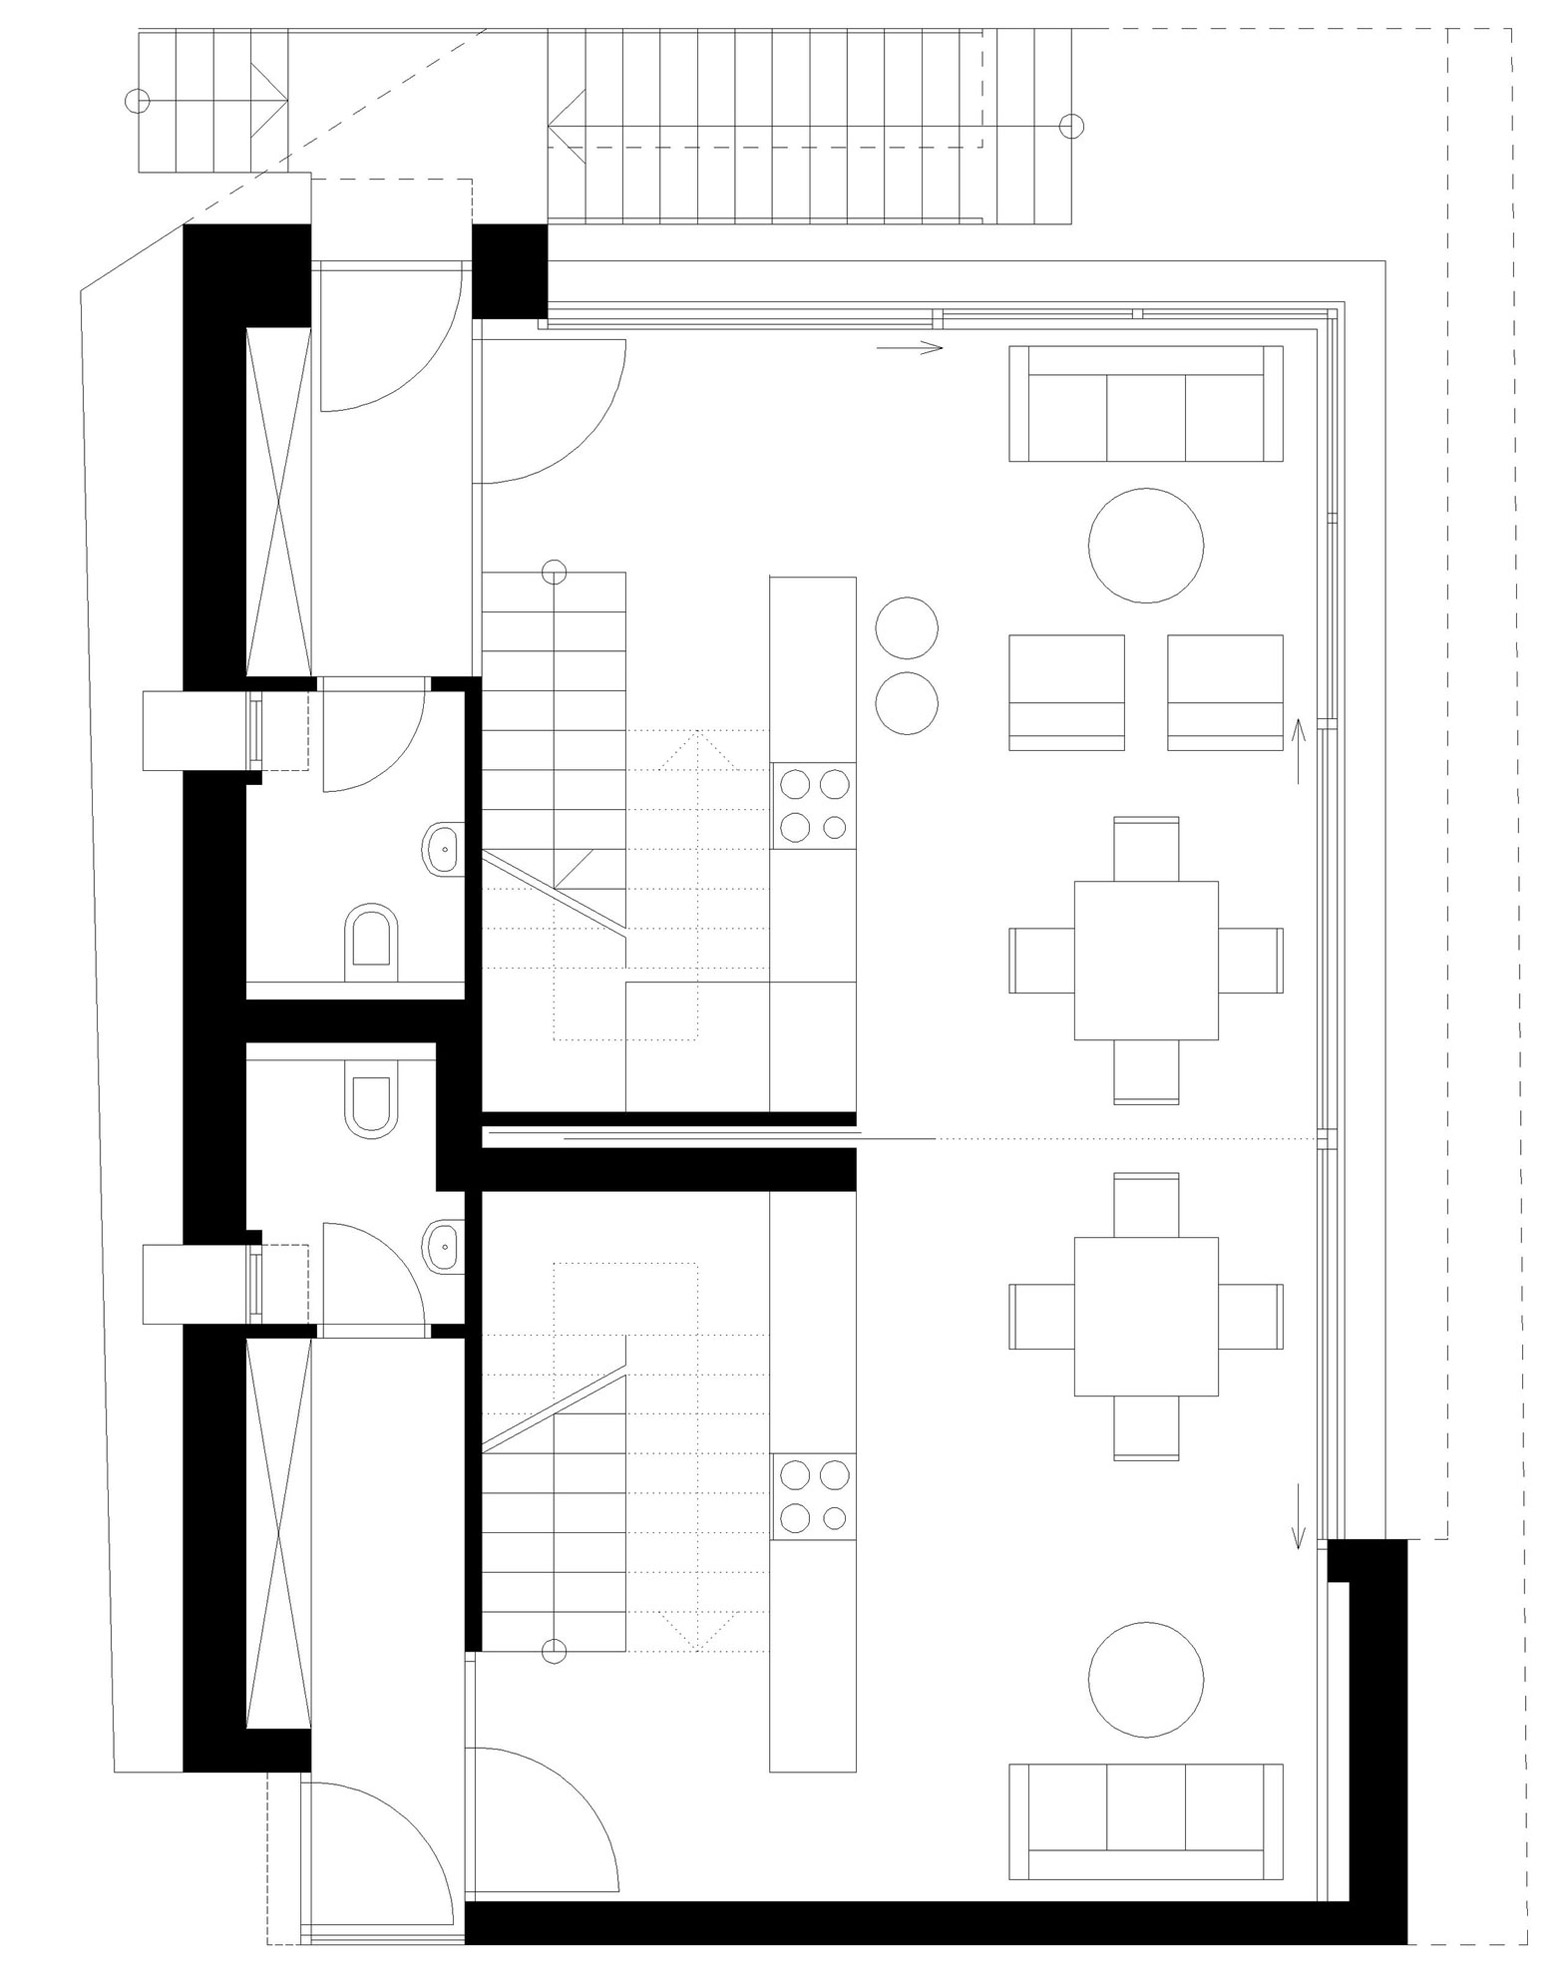 First Floor Plan, Apartment House in Ybbsitz, Austria